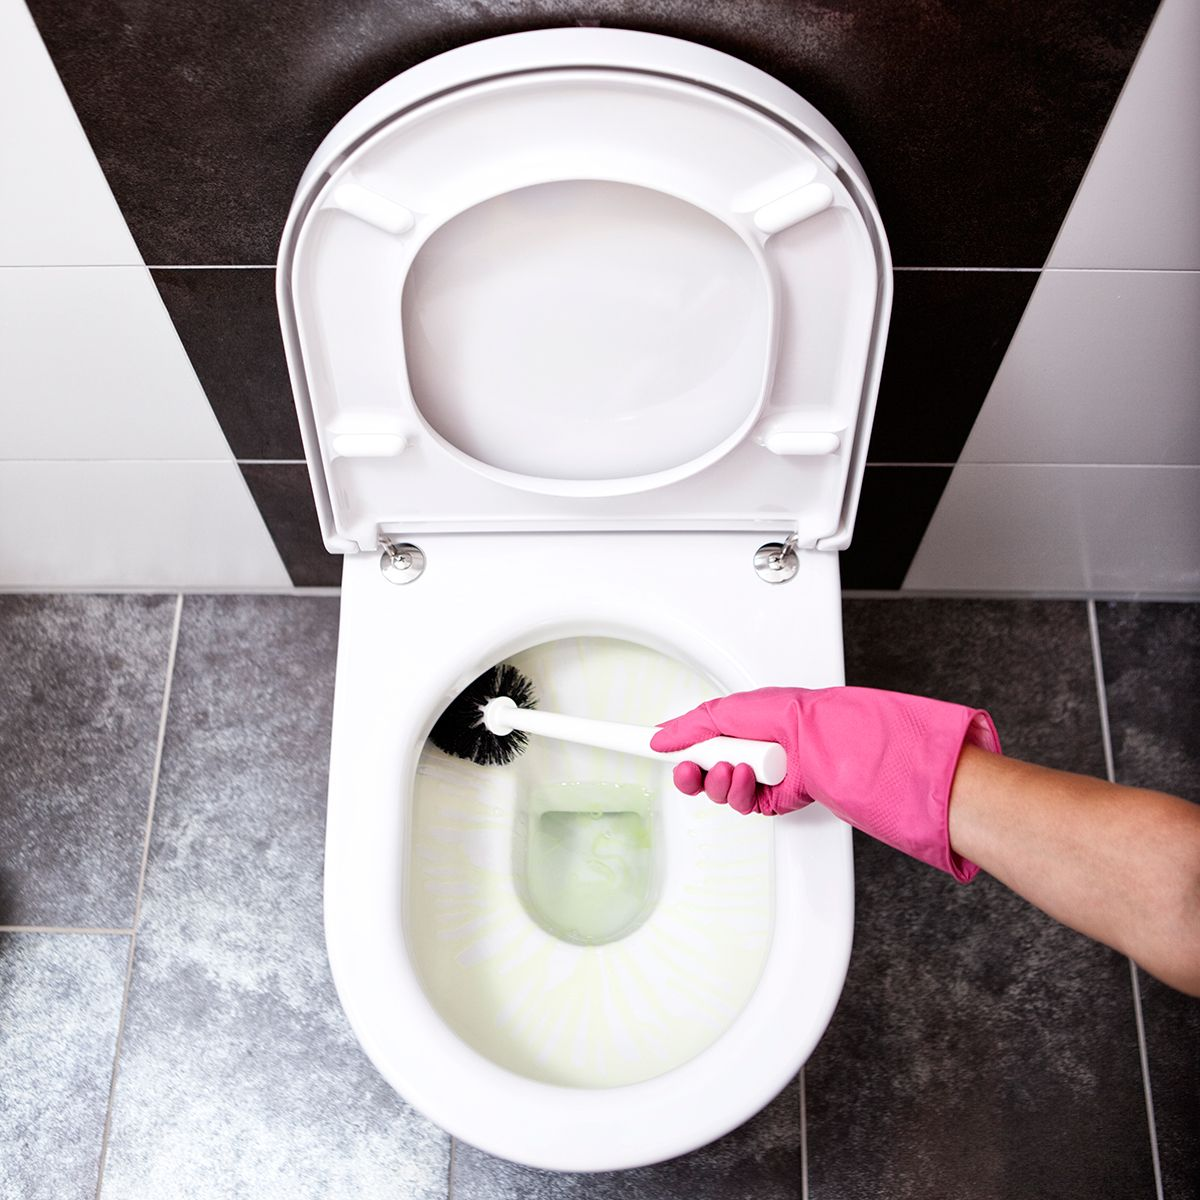 the easiest way to clean the toilet